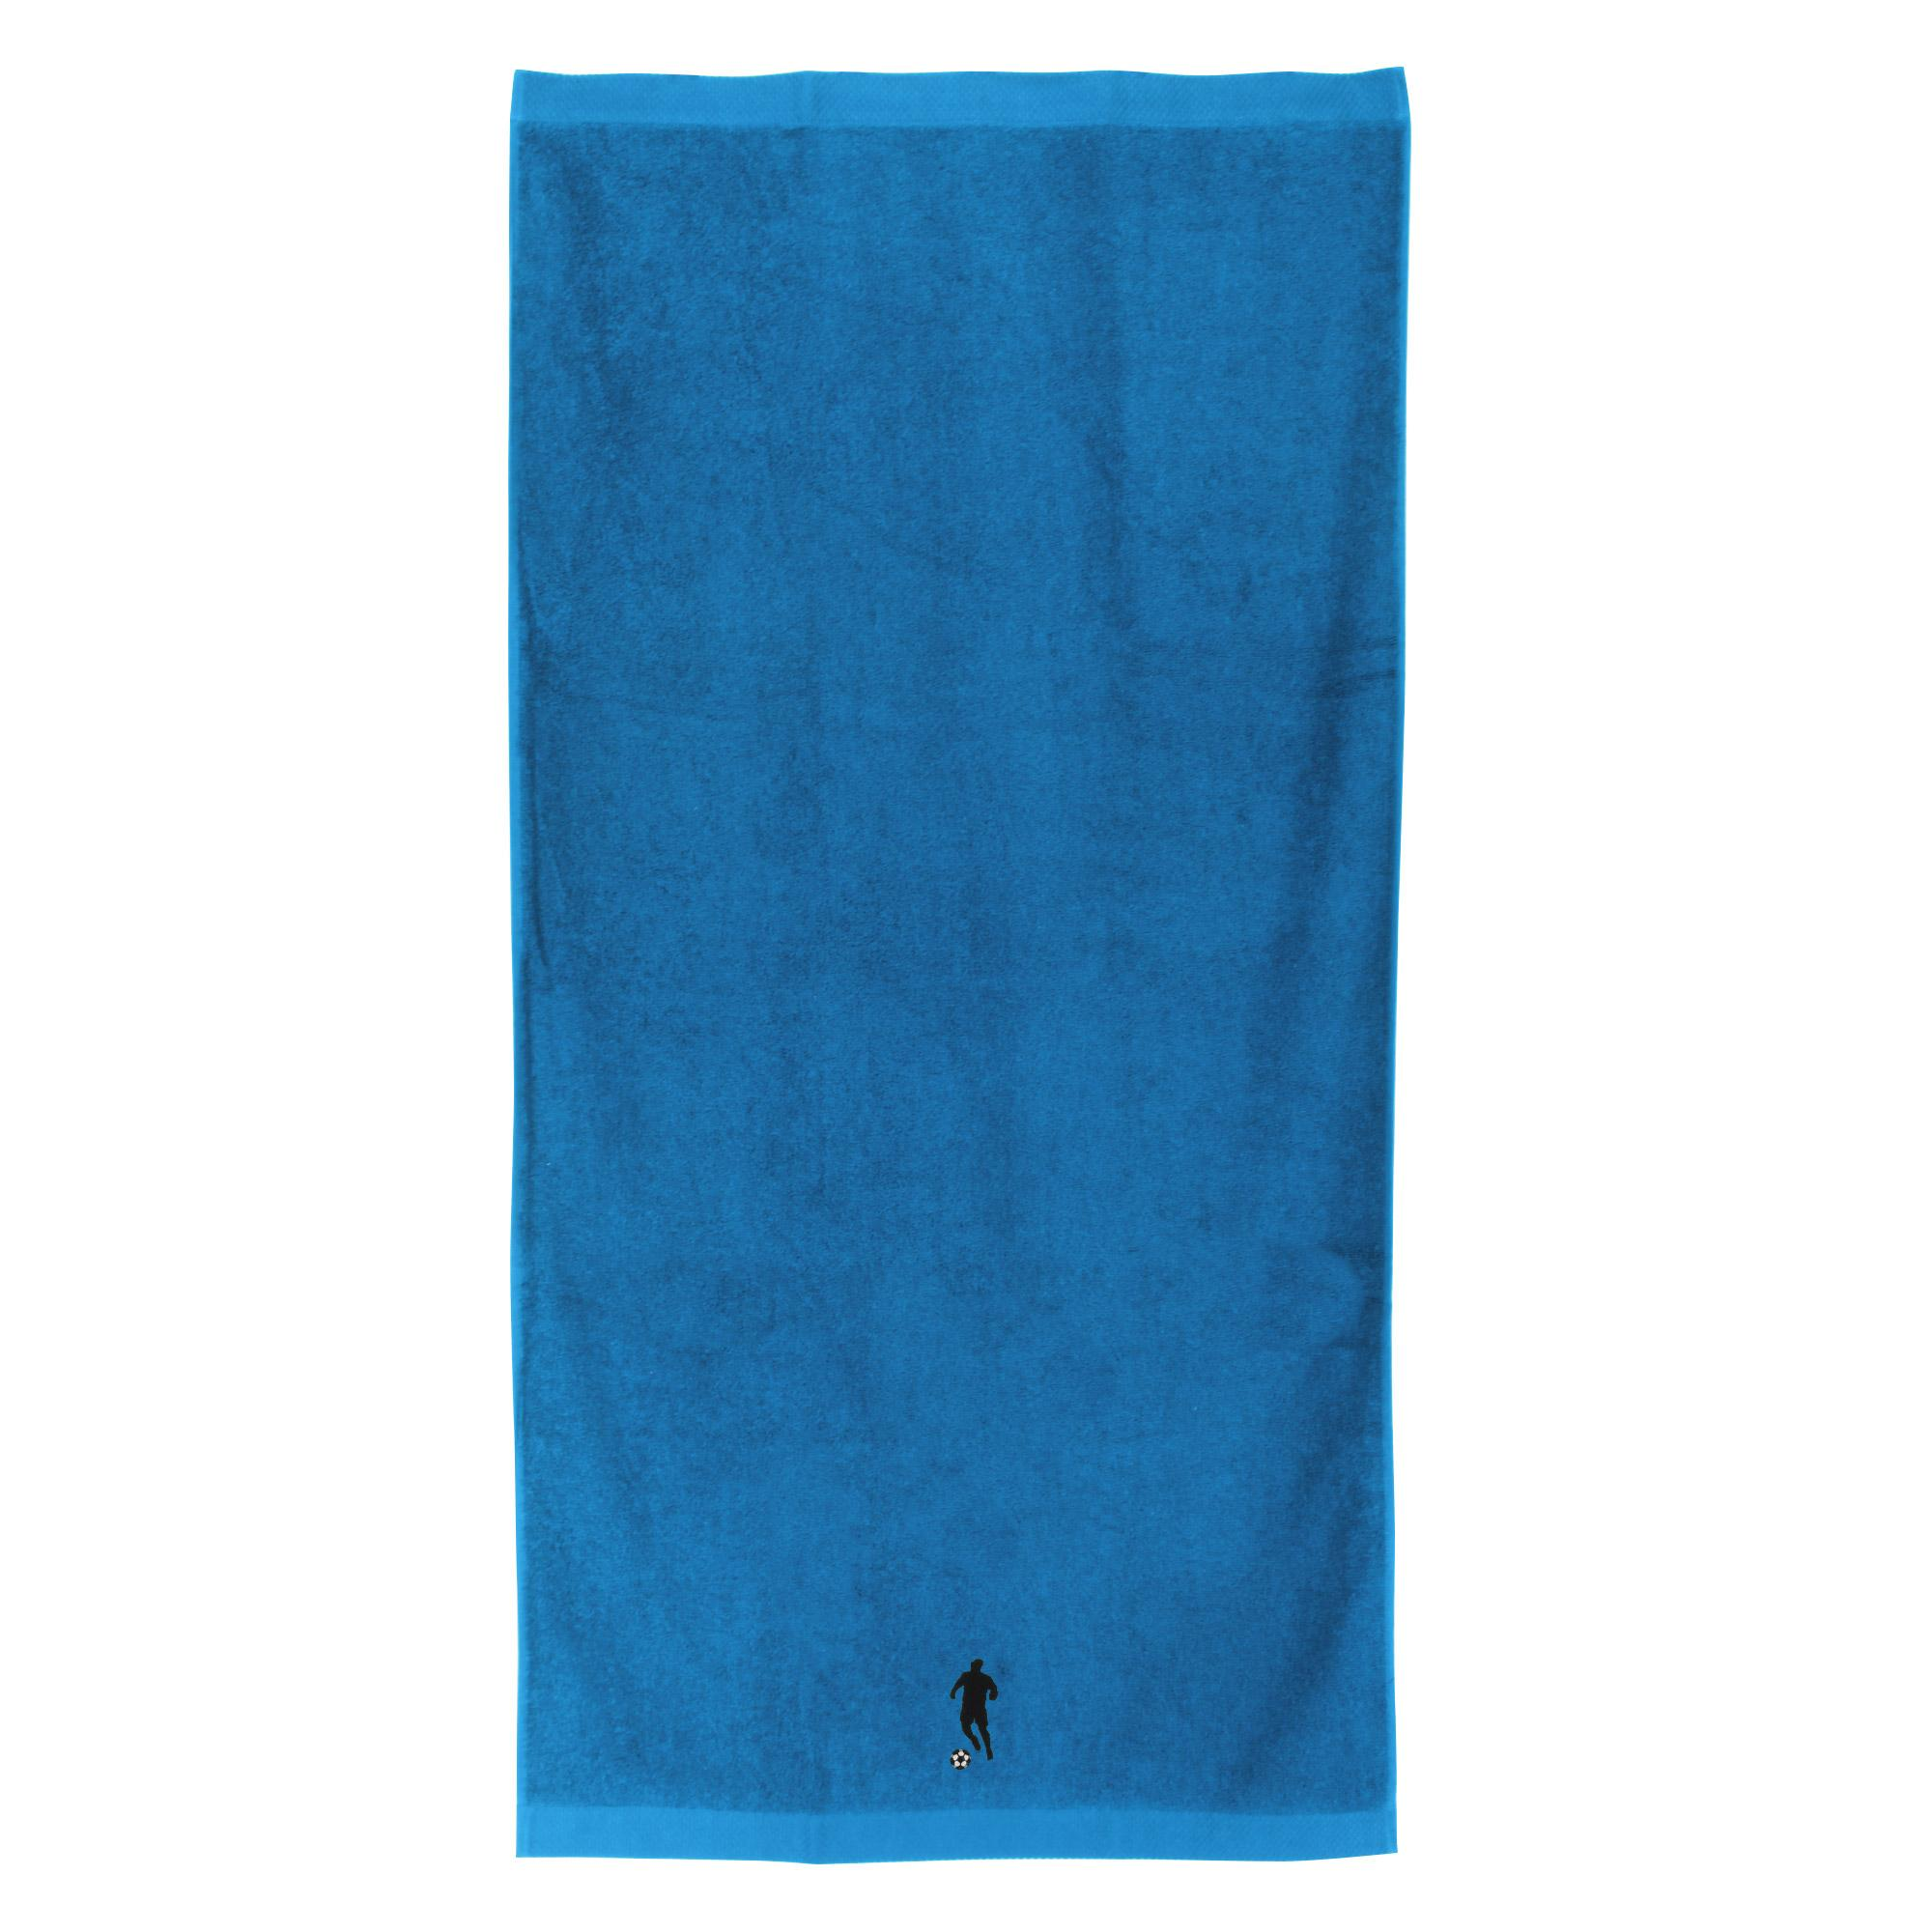 drap de douche 70x140 100 coton 550g m2 pure football bleu turquoise ebay. Black Bedroom Furniture Sets. Home Design Ideas